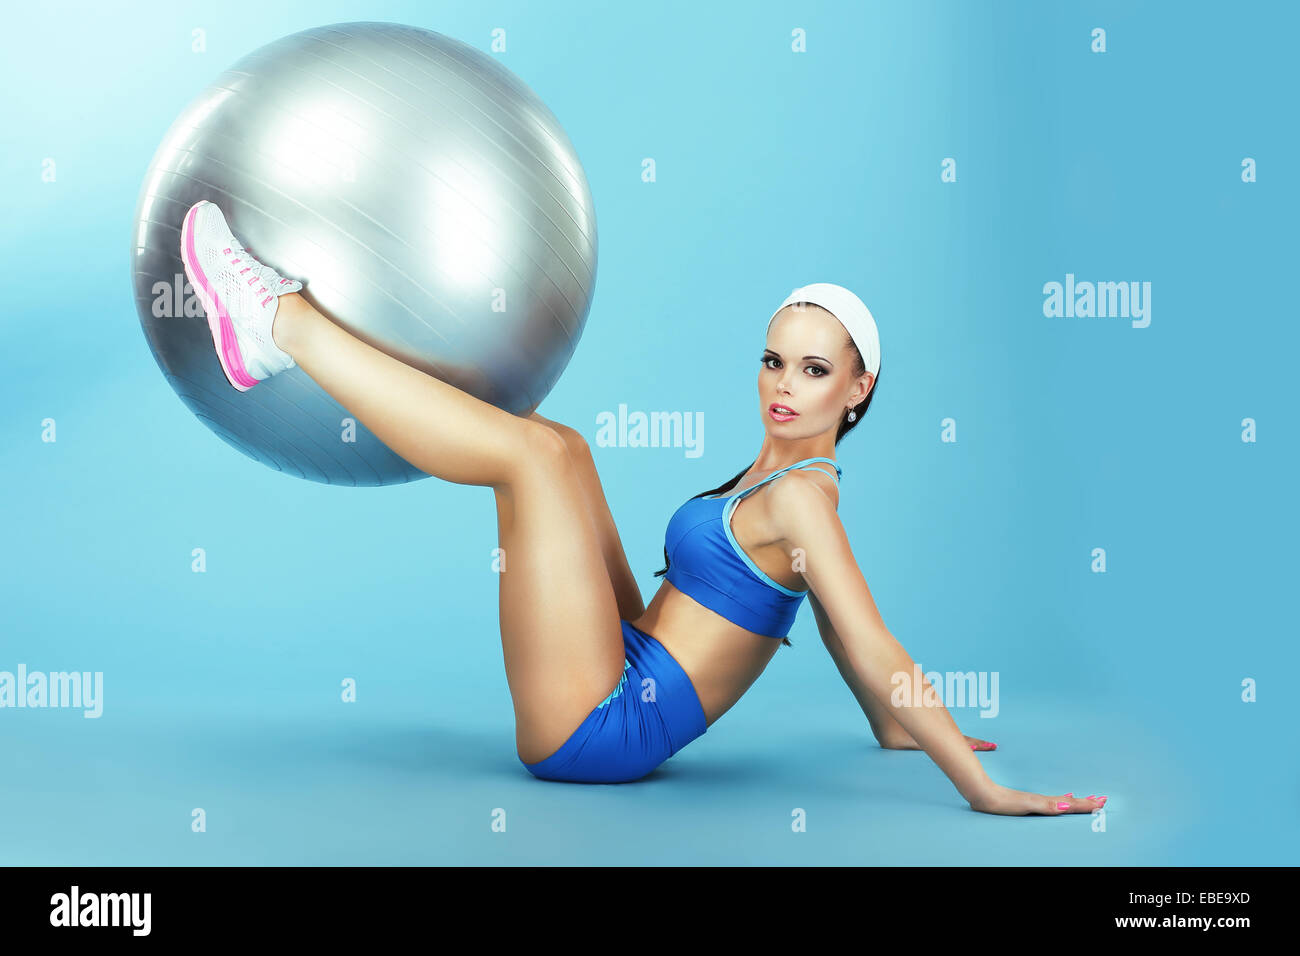 Training. Athletics. Woman in Sportswear with Fitness Ball - Stock Image